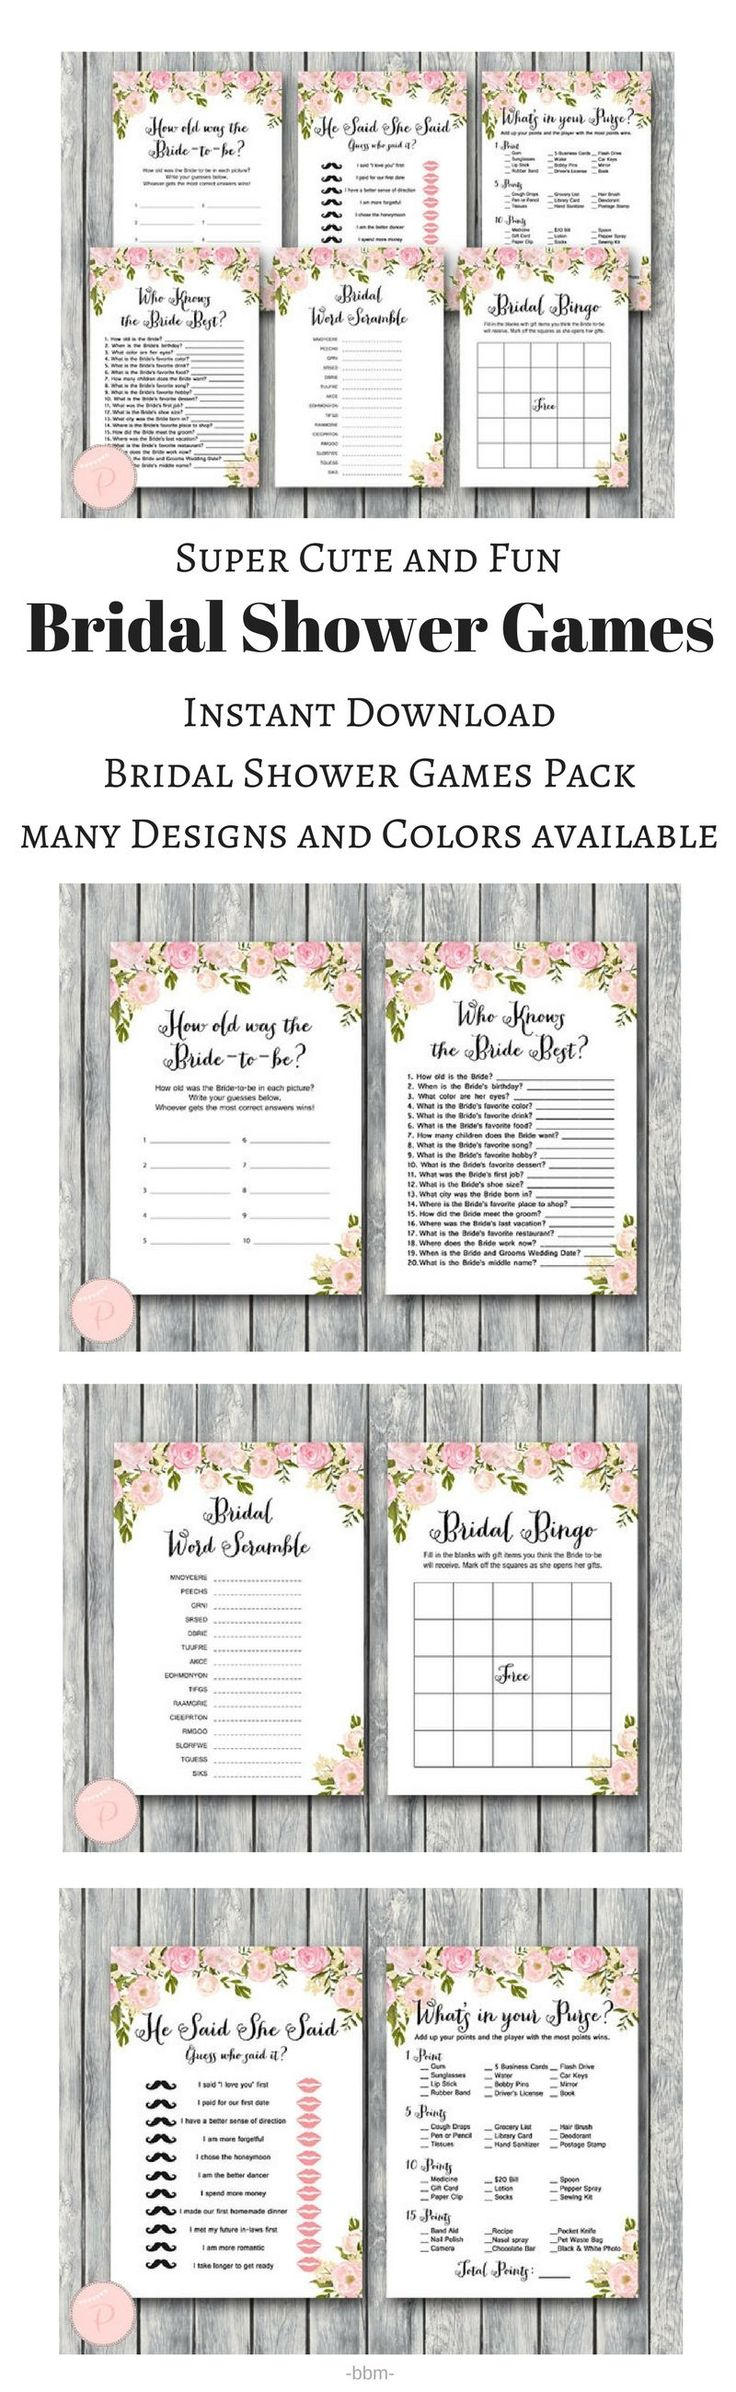 Super Cute Bridal Shower Games Pack! found it on Etsy, it is an instant download and she has sooo many designs to choose from, love it! #bachelorette #bridalshower #bridalparty #bridesmaids #maidofhonor #bridesmaisgift #maidofhonorgift #bacheloretteparty #bridetobe #weddingpreparation #weddingplanning #ad #bbmaff #printable #instantdownload #partygames #loveit